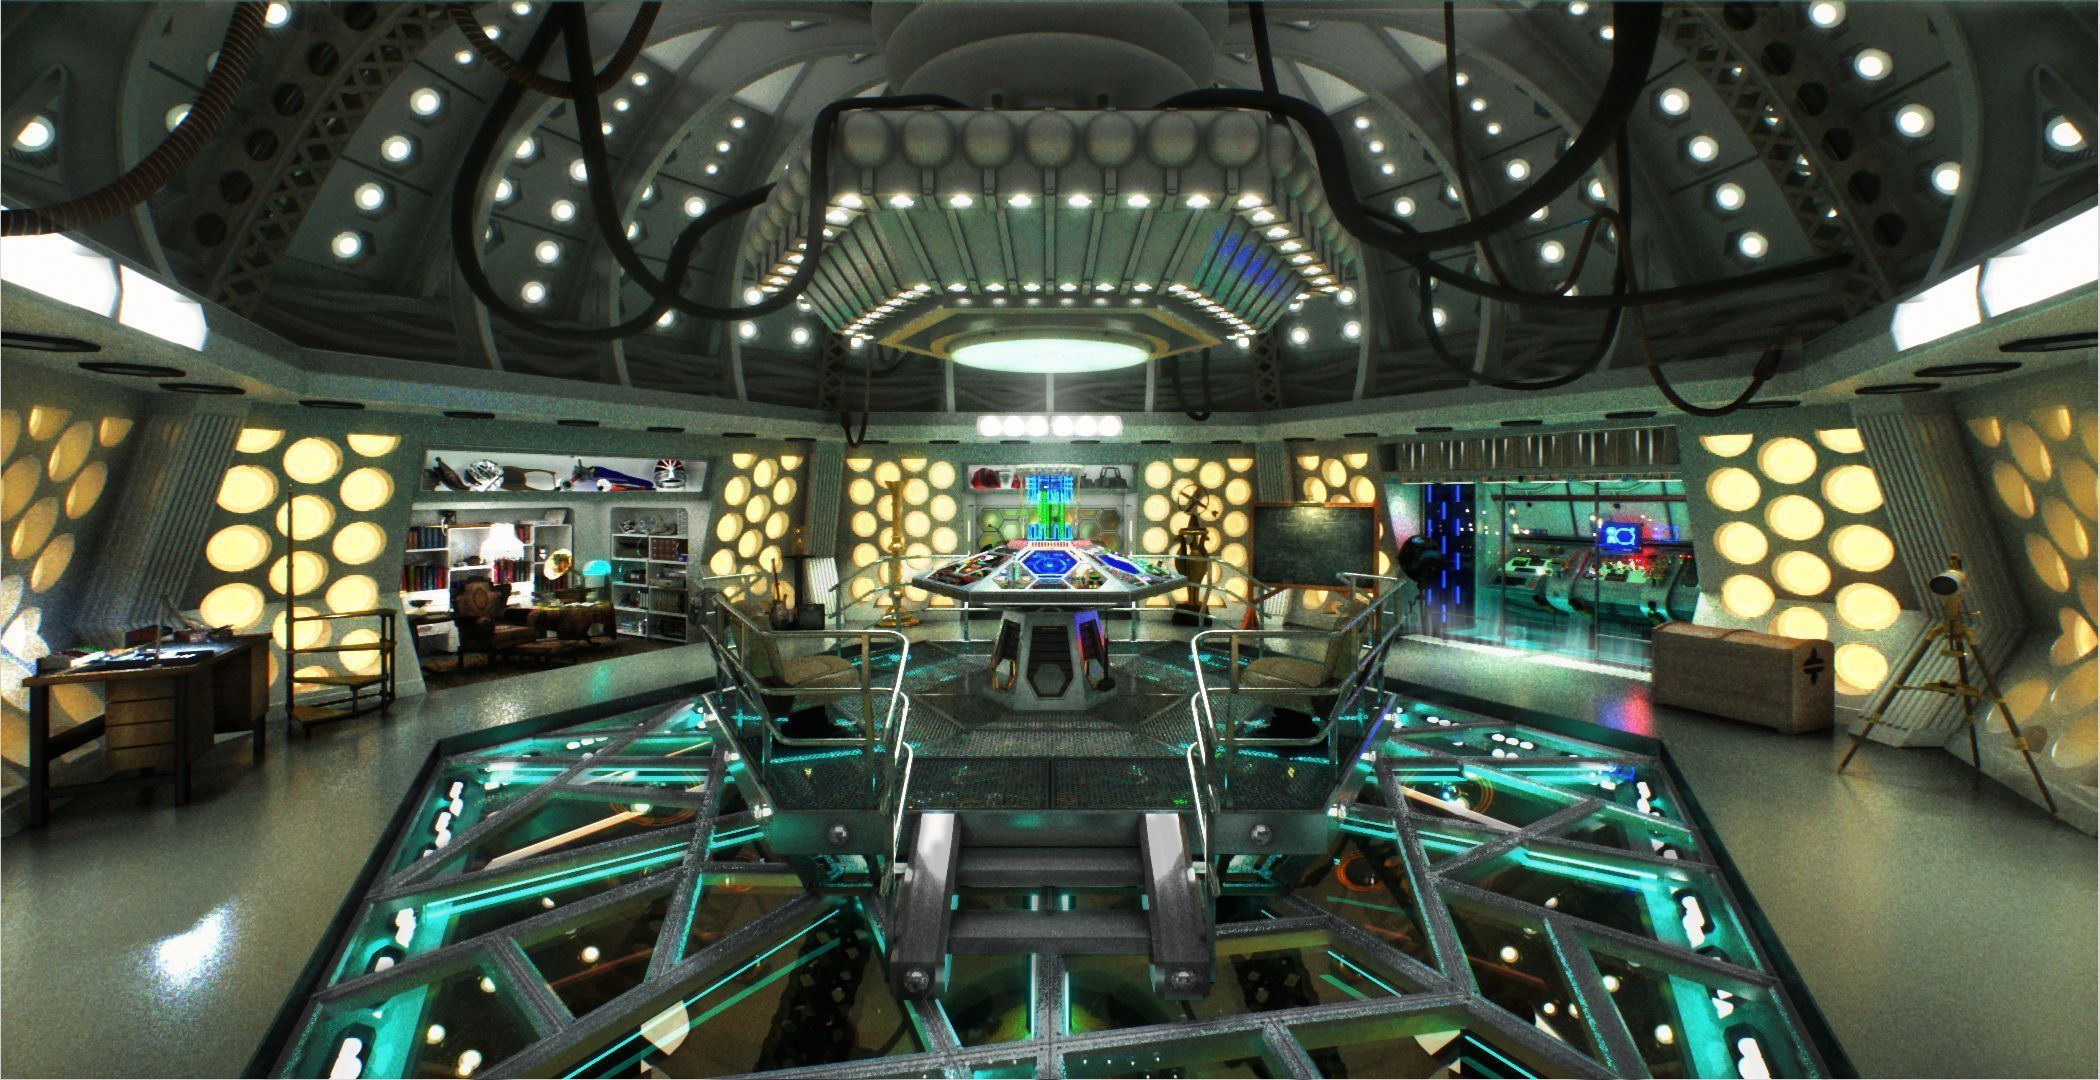 Elegant TARDIS Art | Steampunk Tardis Interior Console Room By Wonderwig Digital  Art ... | DOCTOR WHO | ART FS I | Pinterest | Tardis, Tardis Art And Fandom